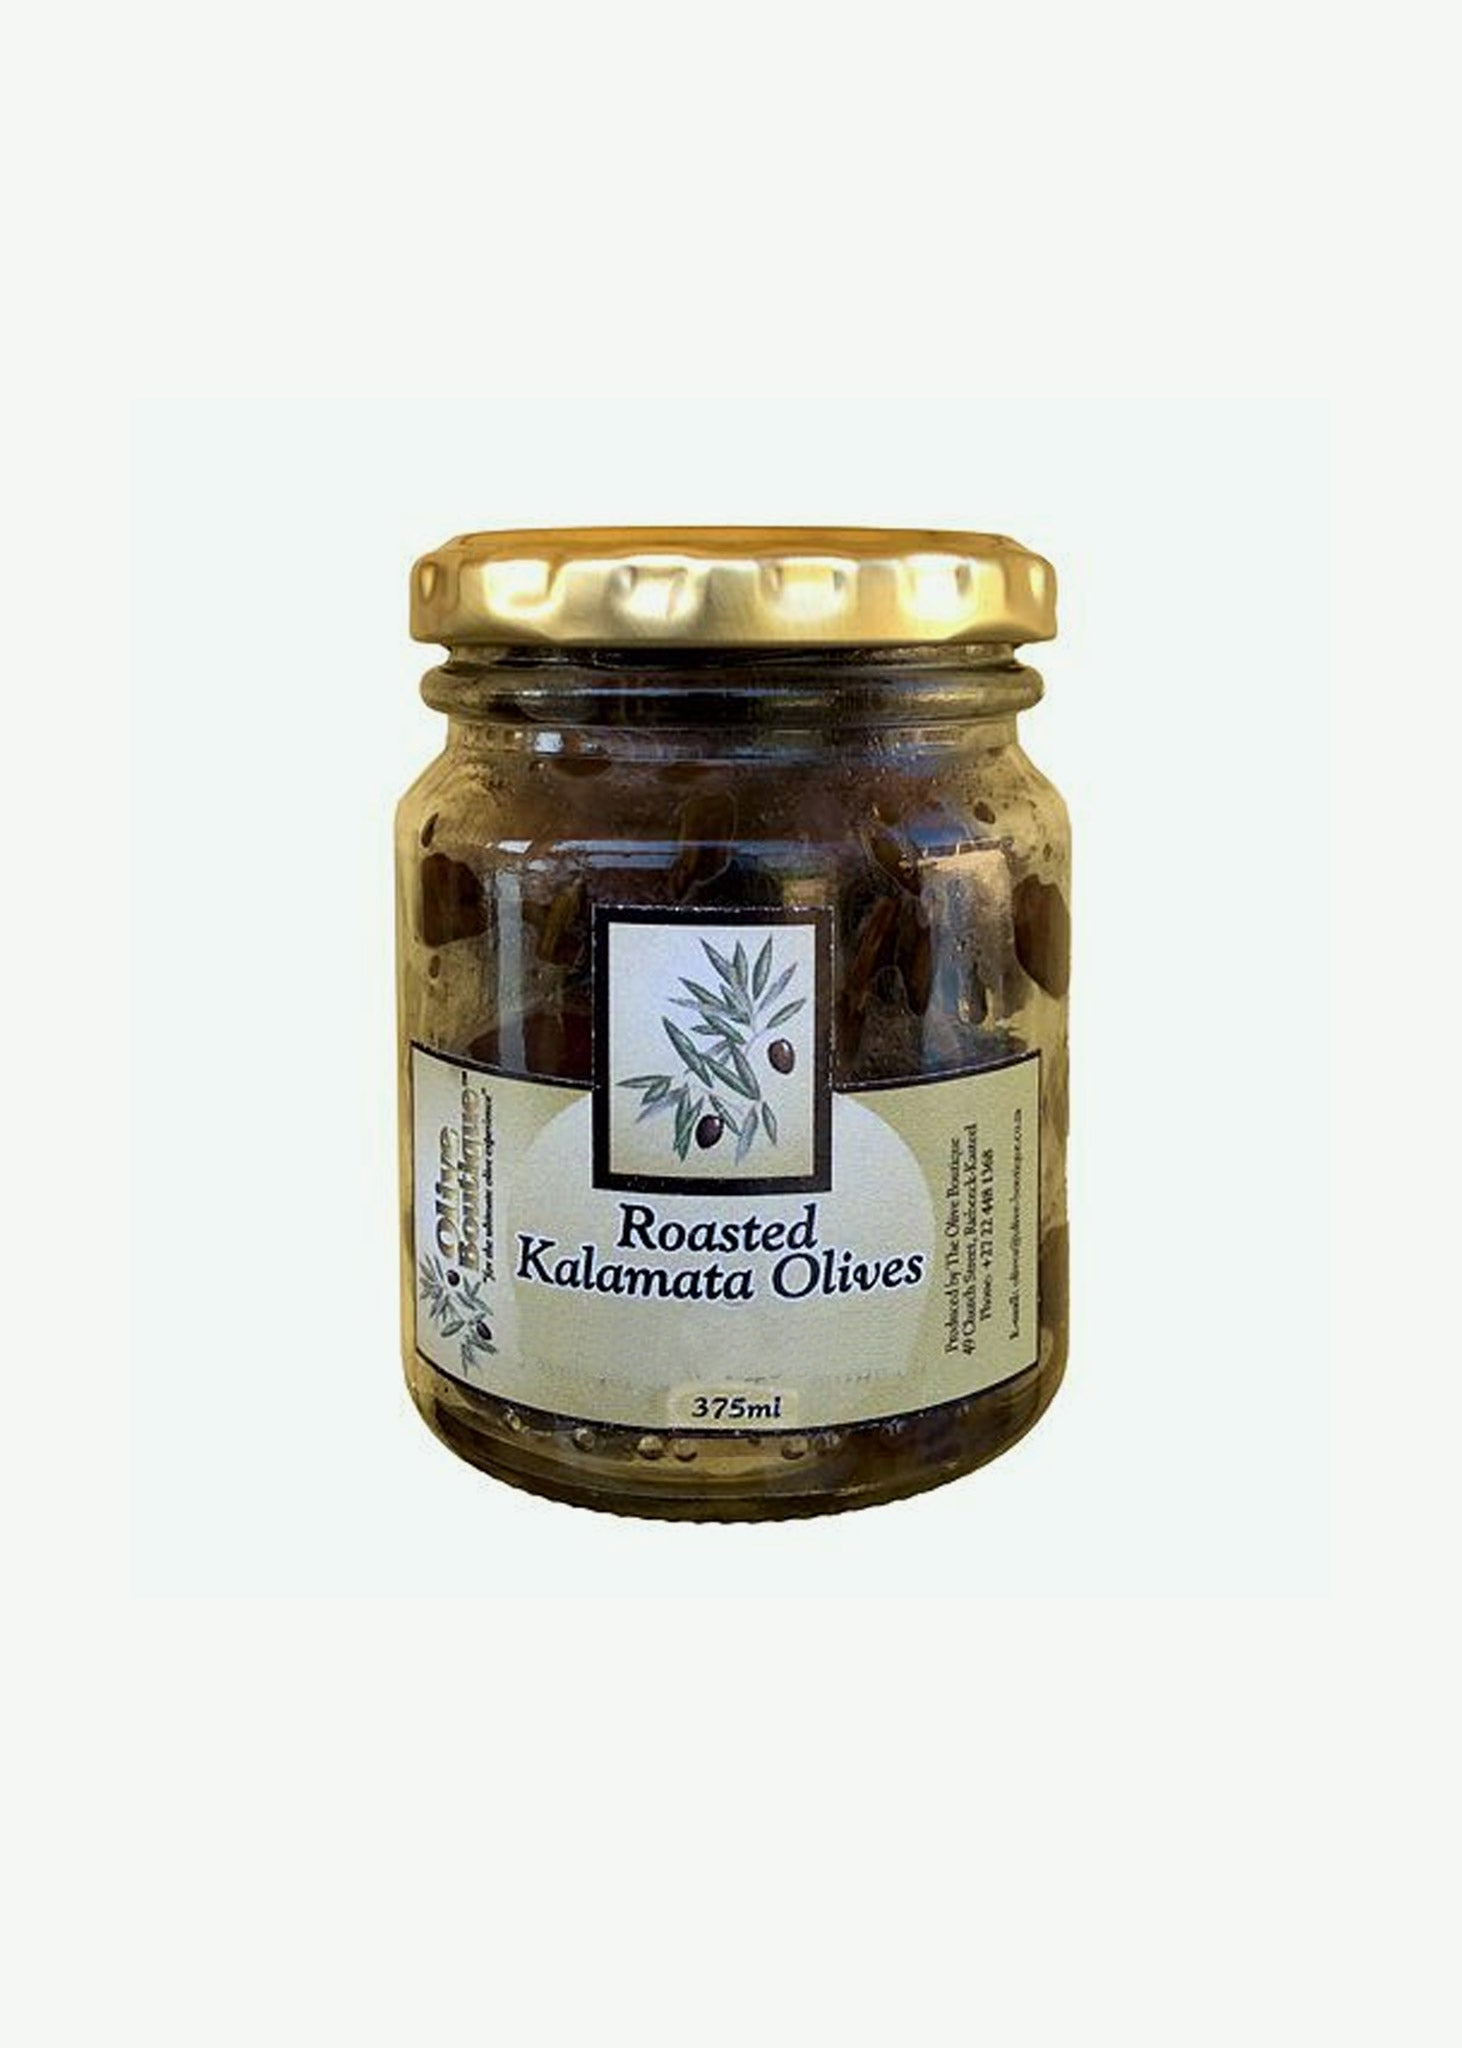 Kalamata Olives Roasted with Chilli 375ml